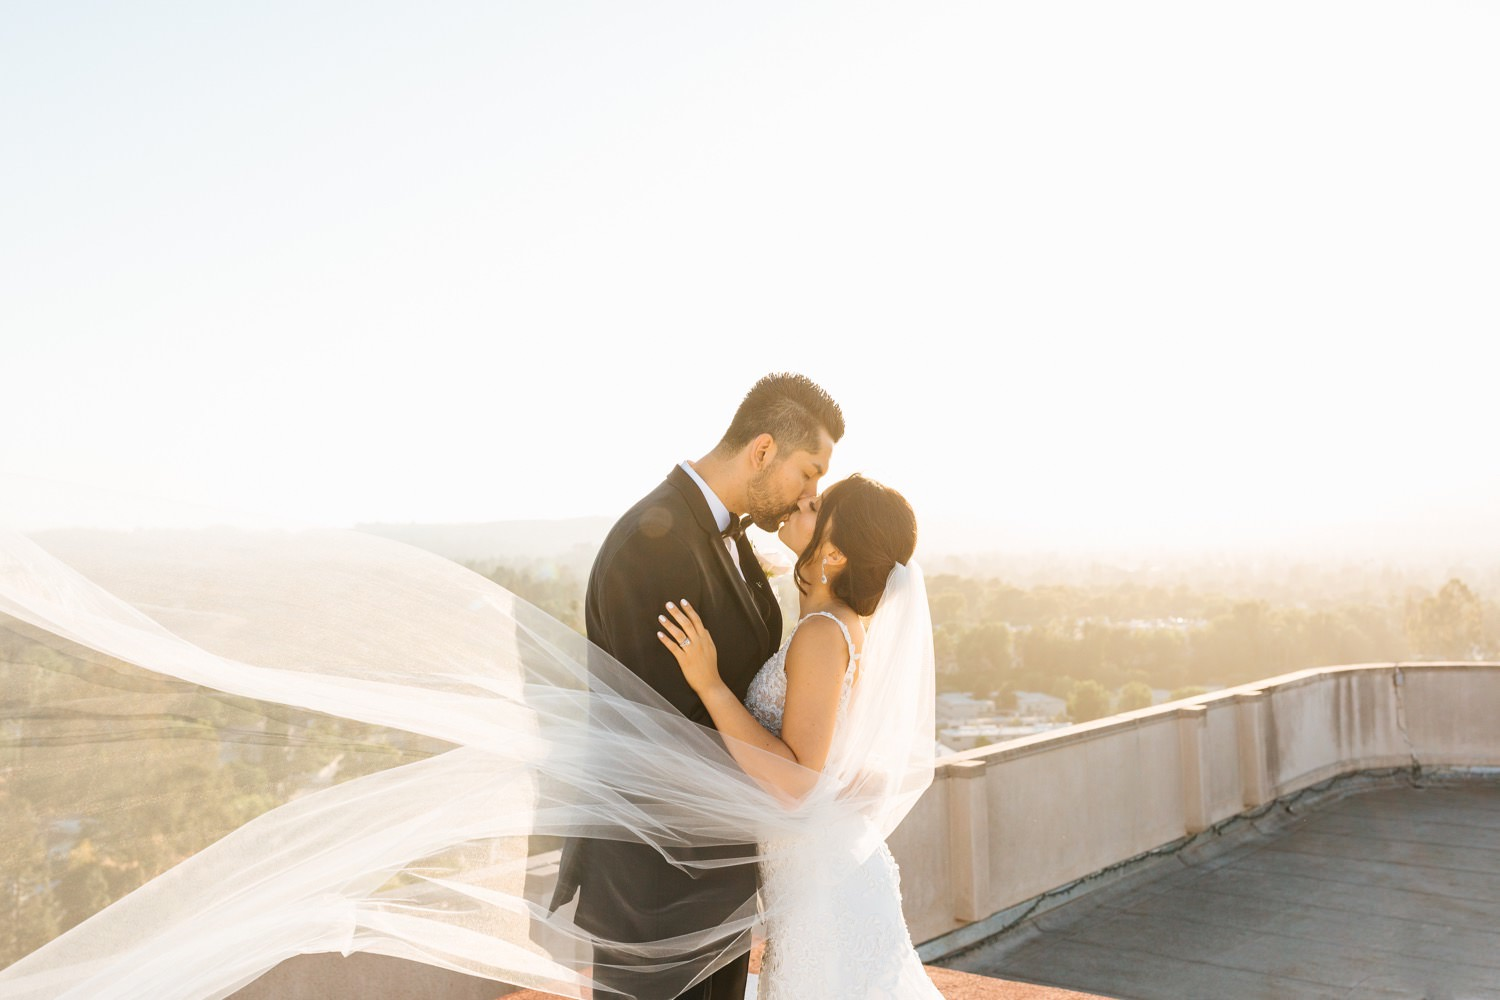 LA rooftop wedding photos - romantic bride and groom photos - veil wedding photos - https://brittneyhannonphotography.com